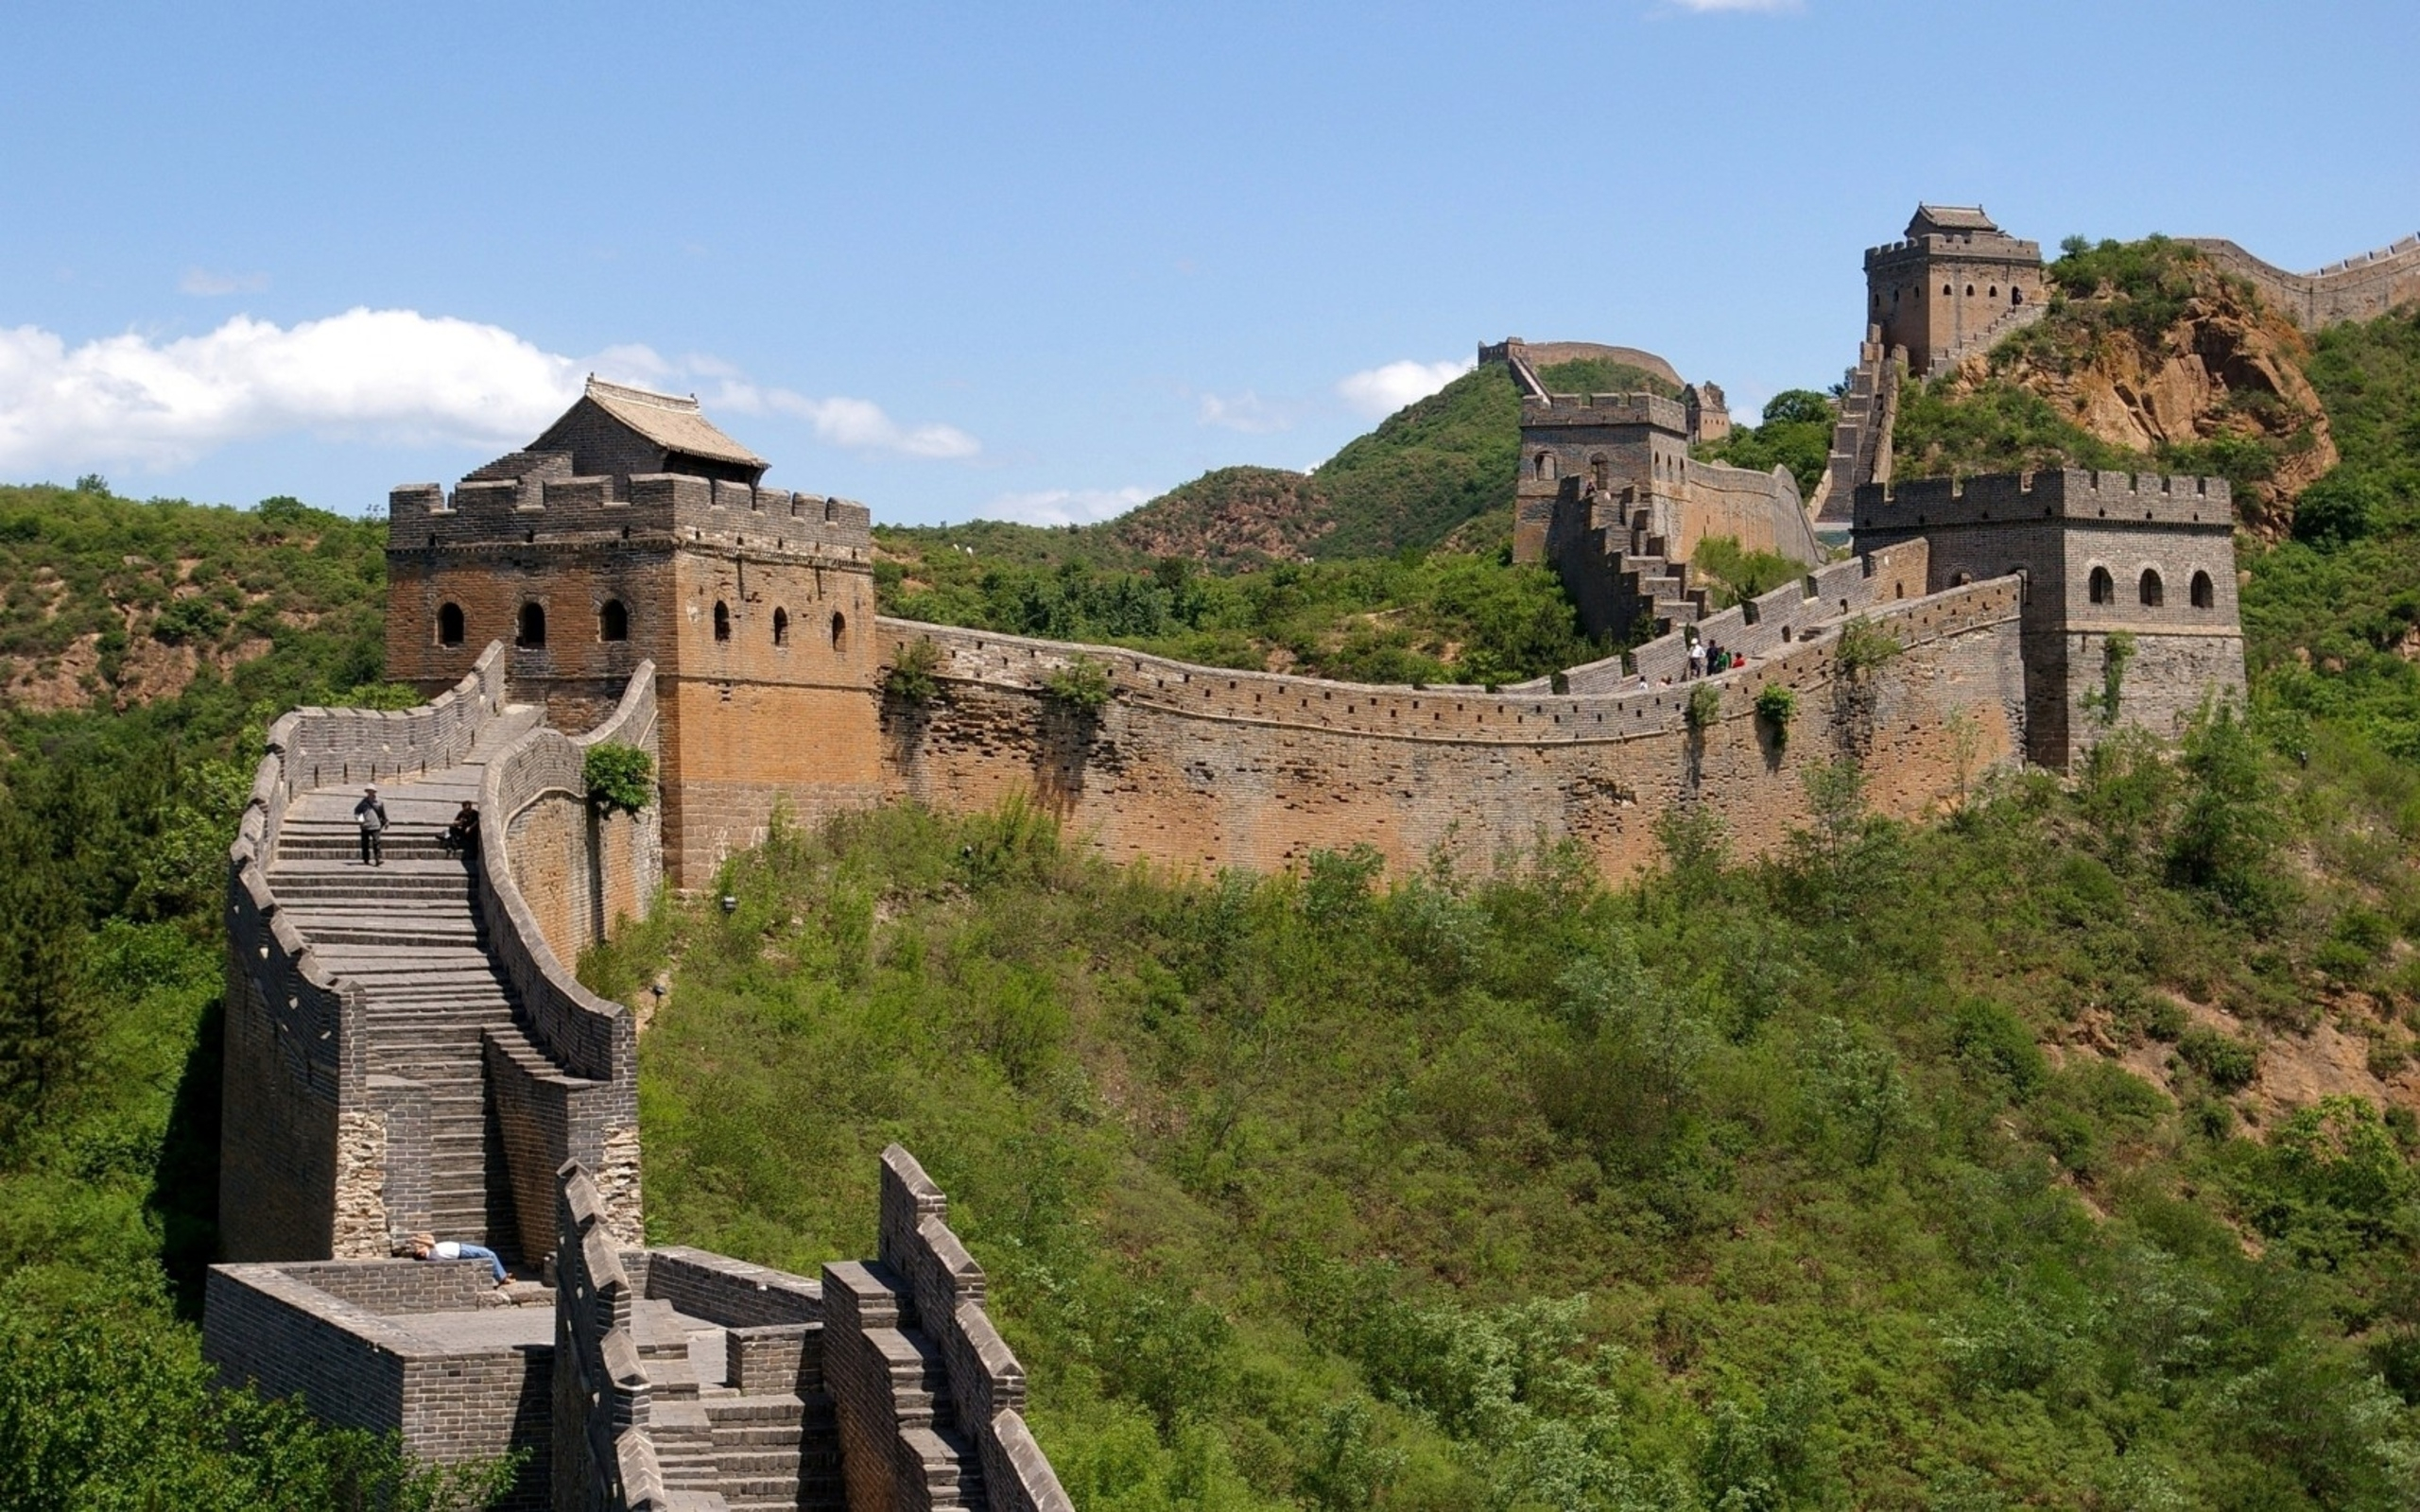 56 great wall of china hd wallpapers   background images - wallpaper